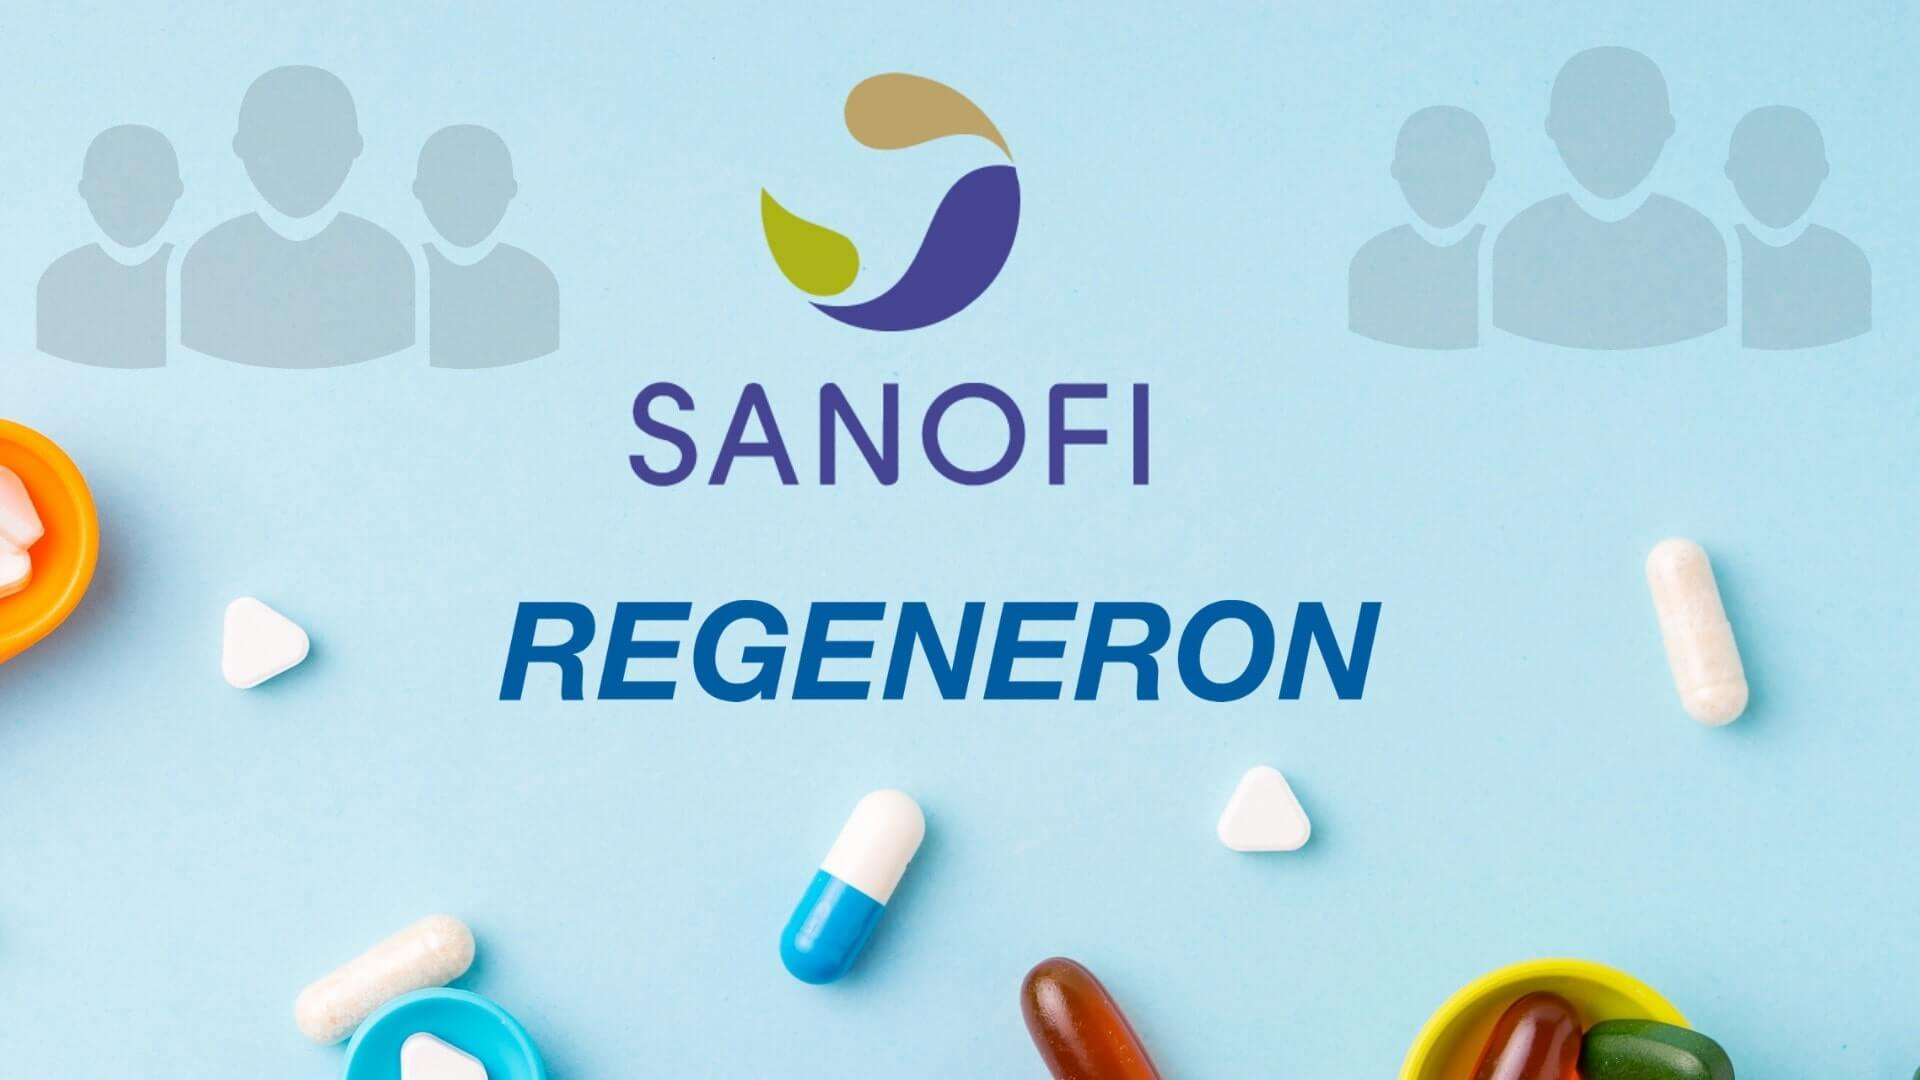 Regeneron Reworks Partnership With Sanofi